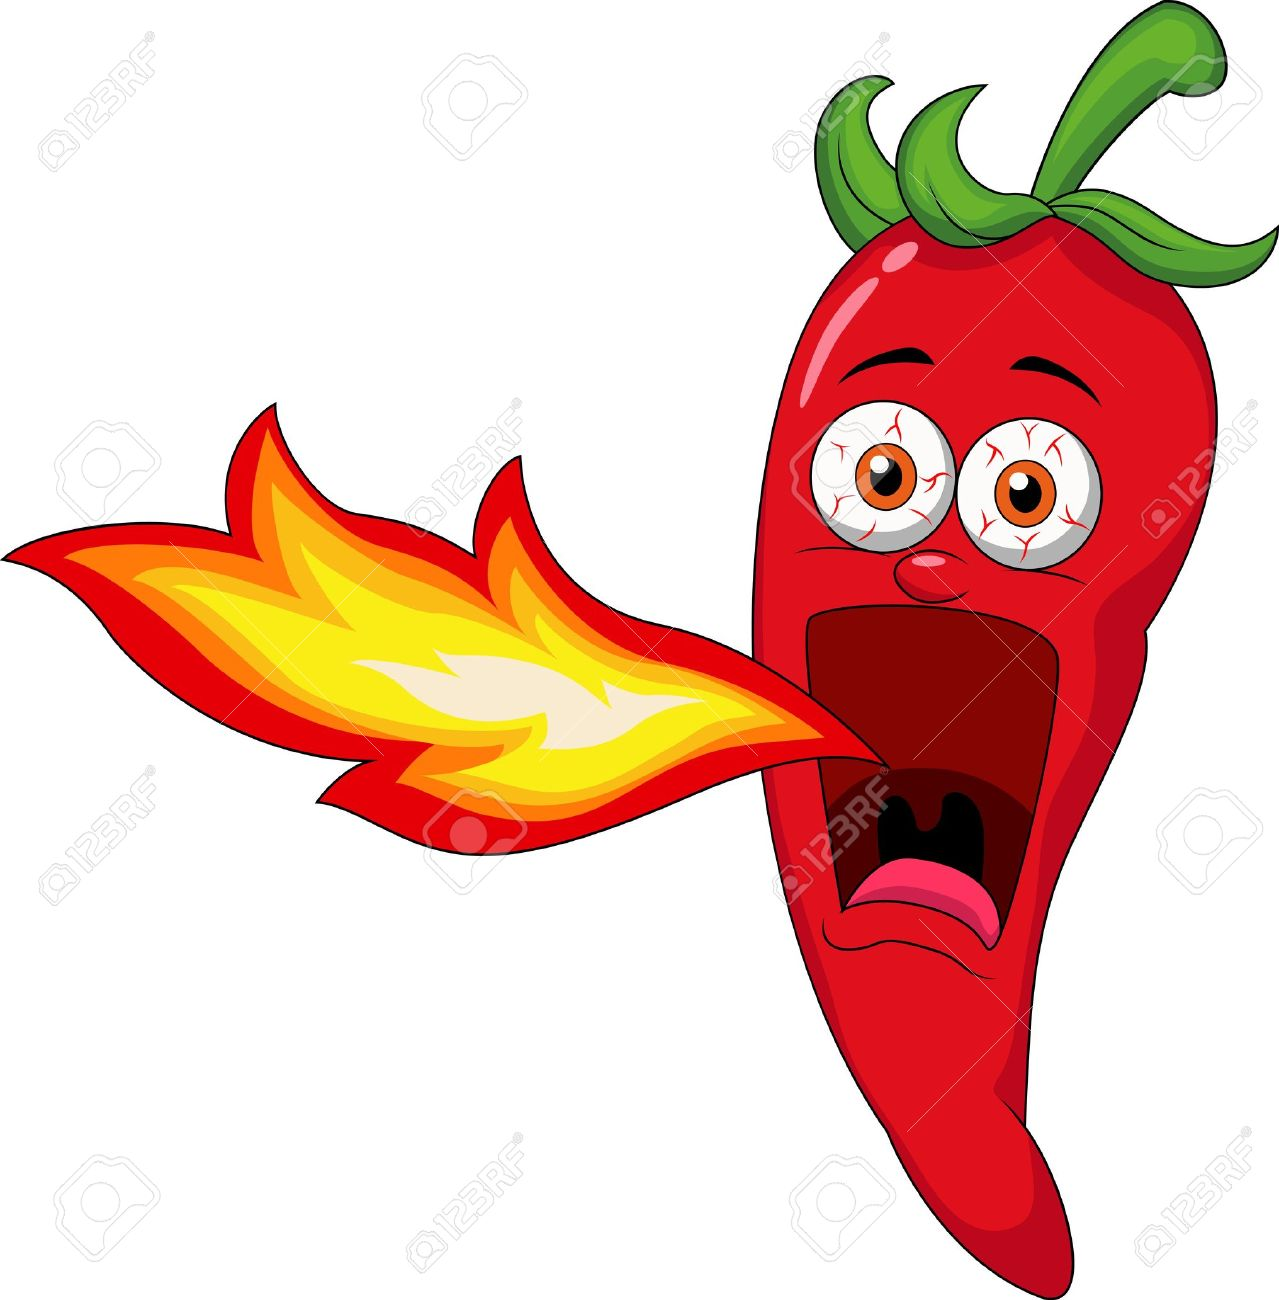 chili cartoon character breathing fire royalty free cliparts rh 123rf com chili pepper clipart images red chili pepper clipart free